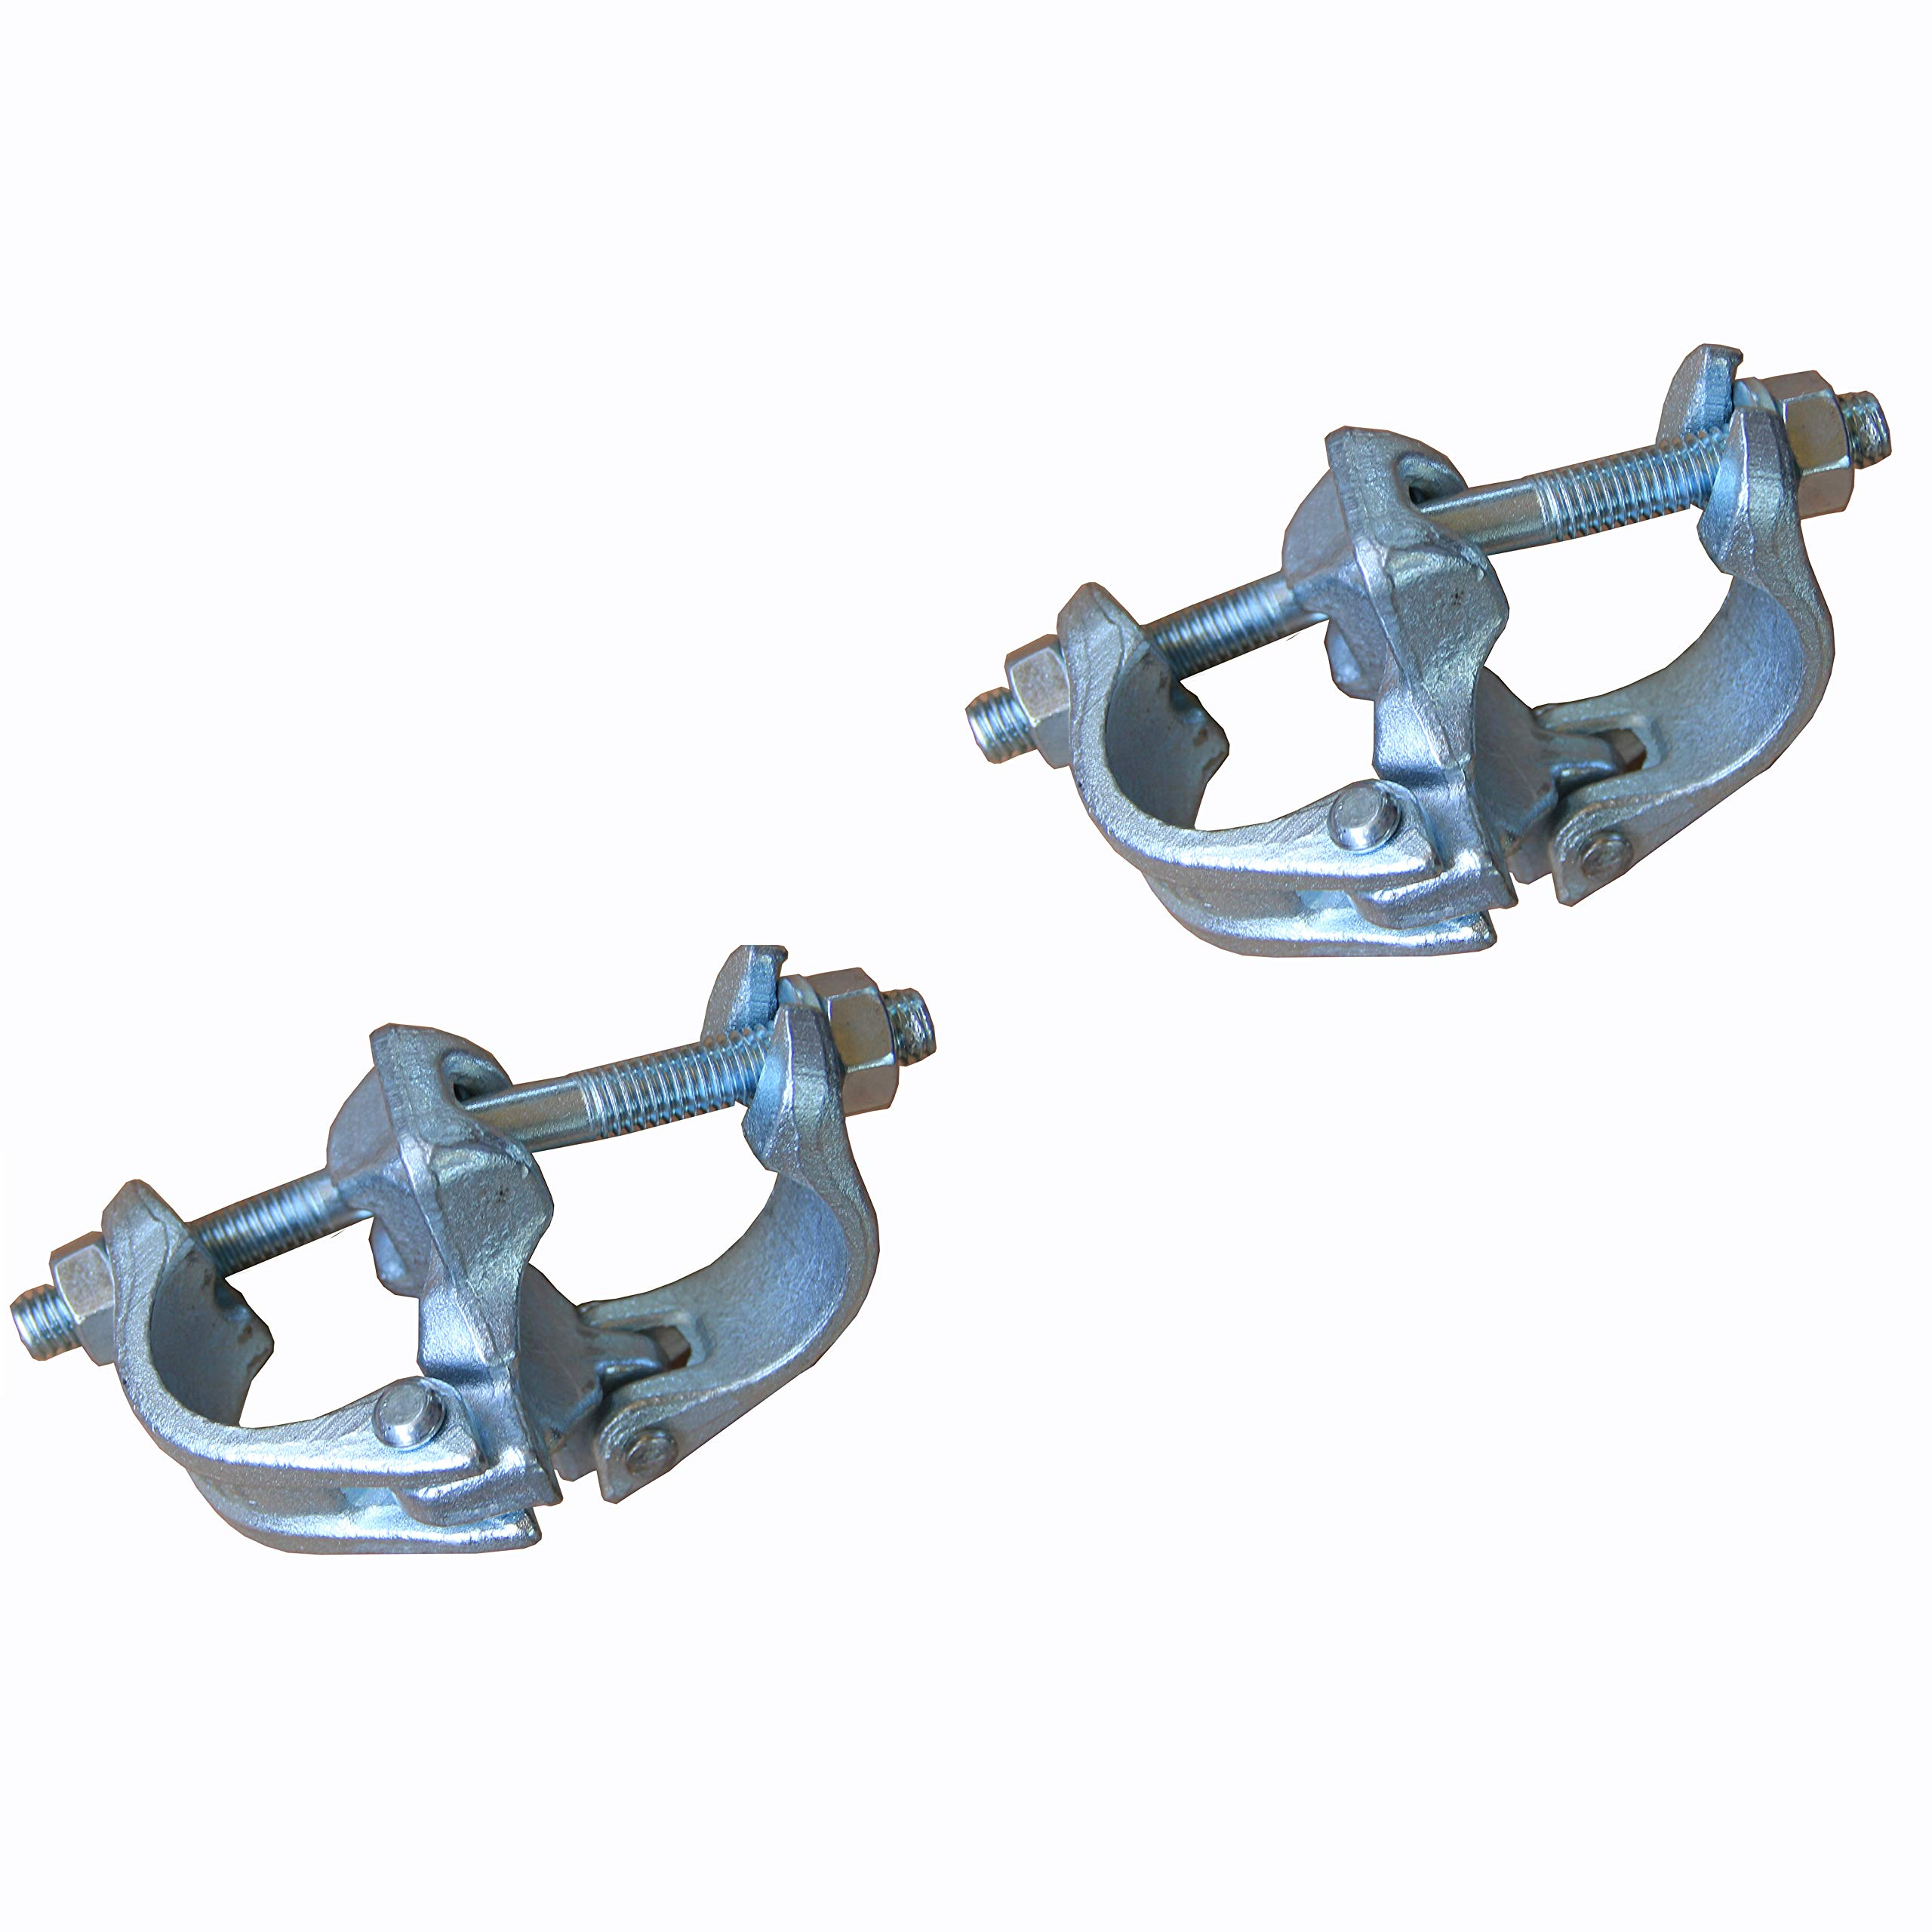 Fixed Right Angle Scaffolding Clamps British Type 2 pcs Brand New Prisms by prisms